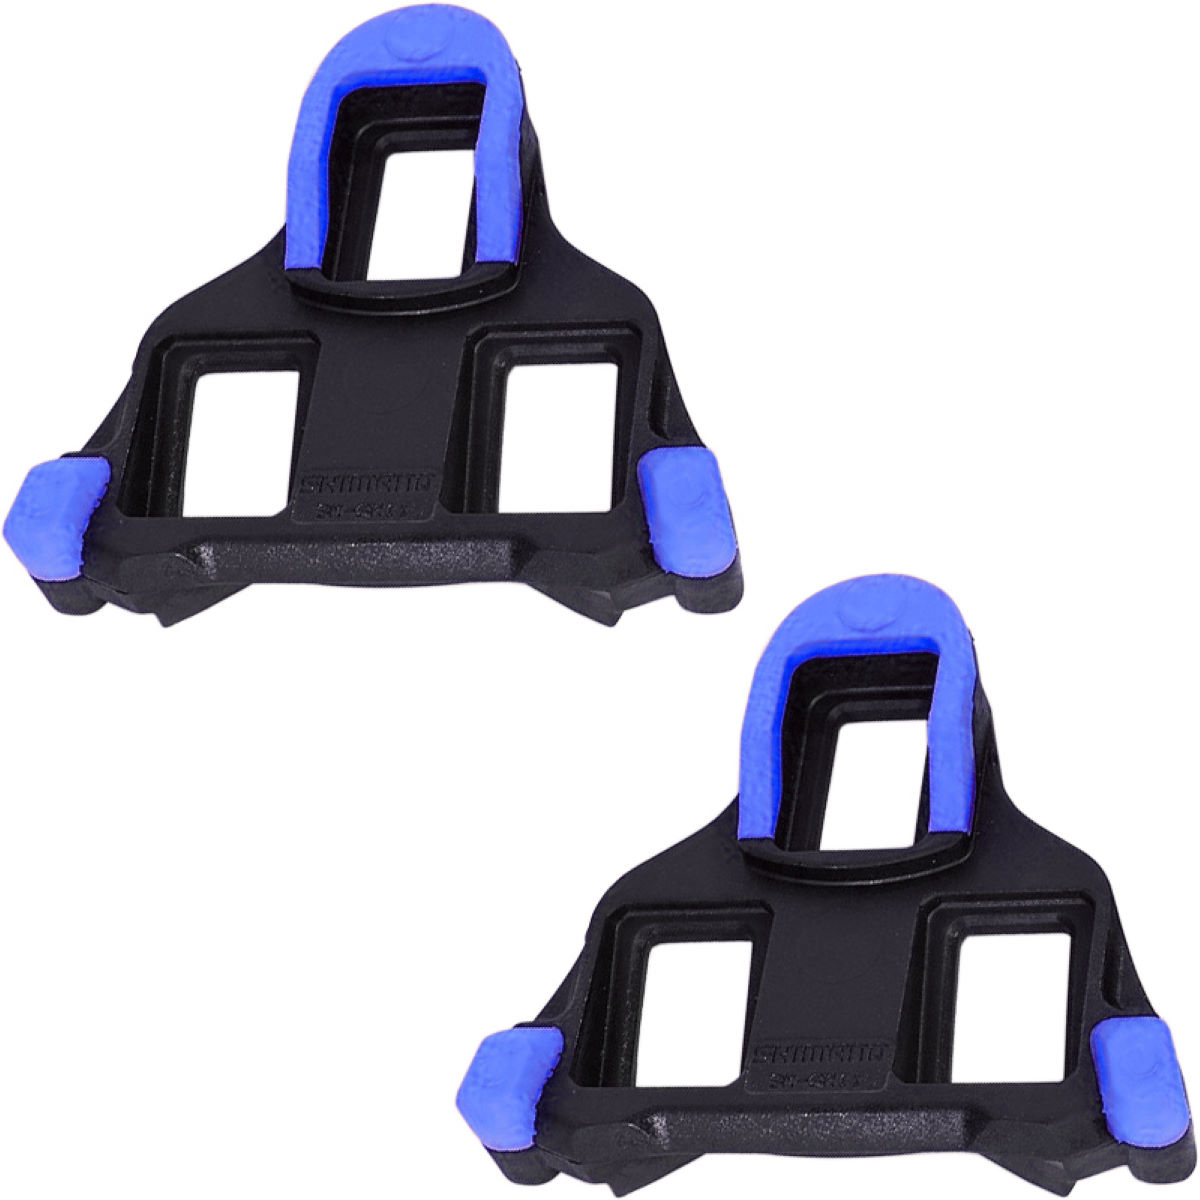 Shimano Spd Sl Cleats - Floating - Sh12 Blue Front Pivot  Cleats